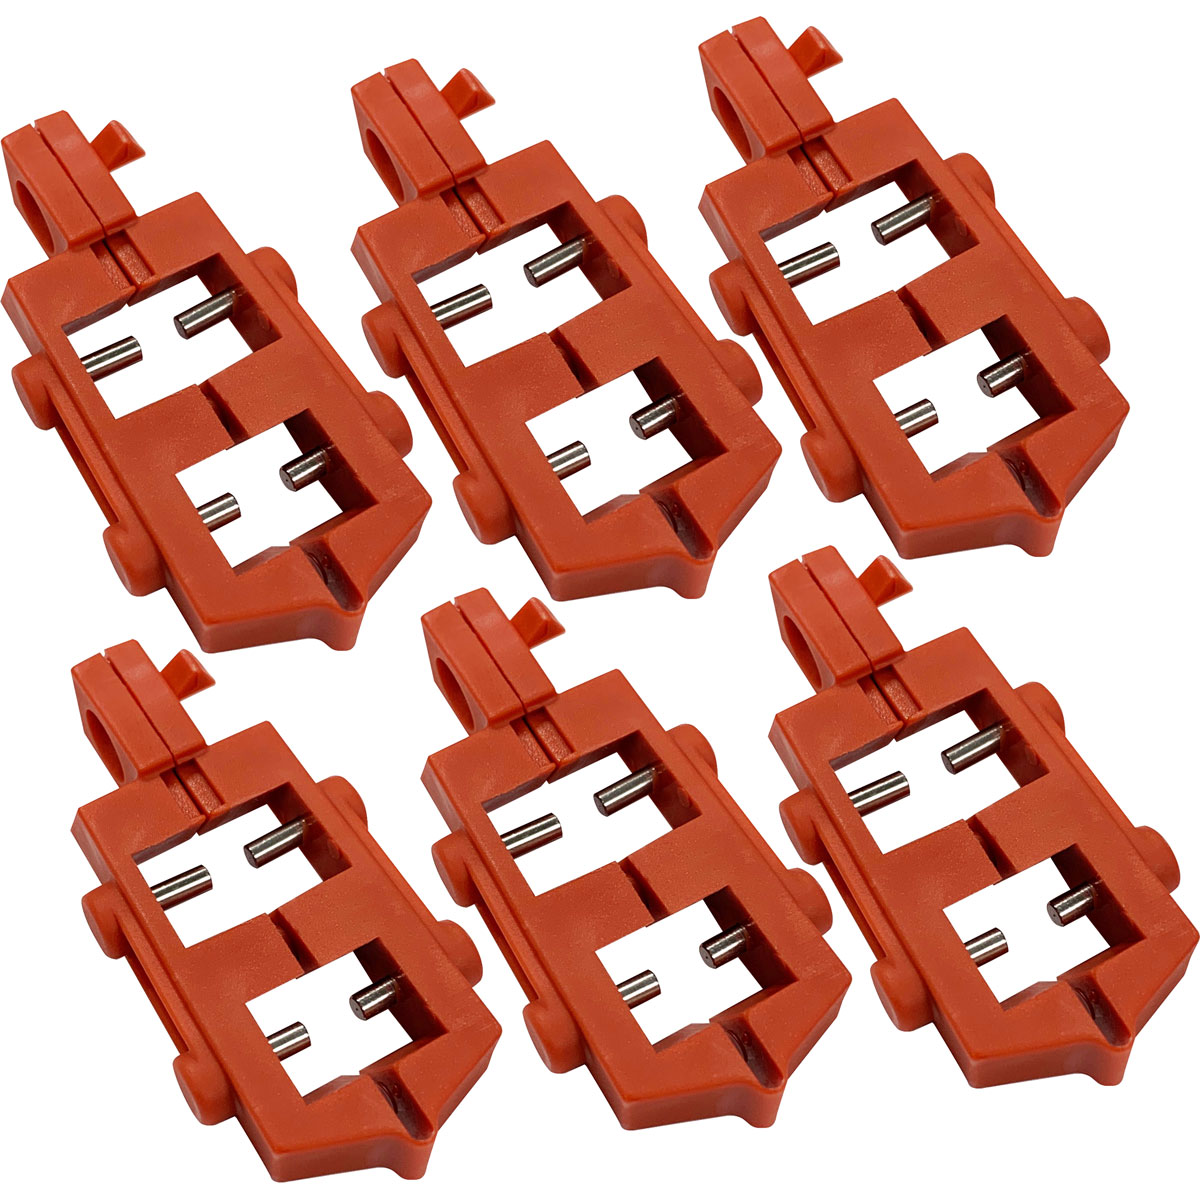 Brady 65688 120 Volt Snap-On Circuit Breaker Lockouts (6/pkg)